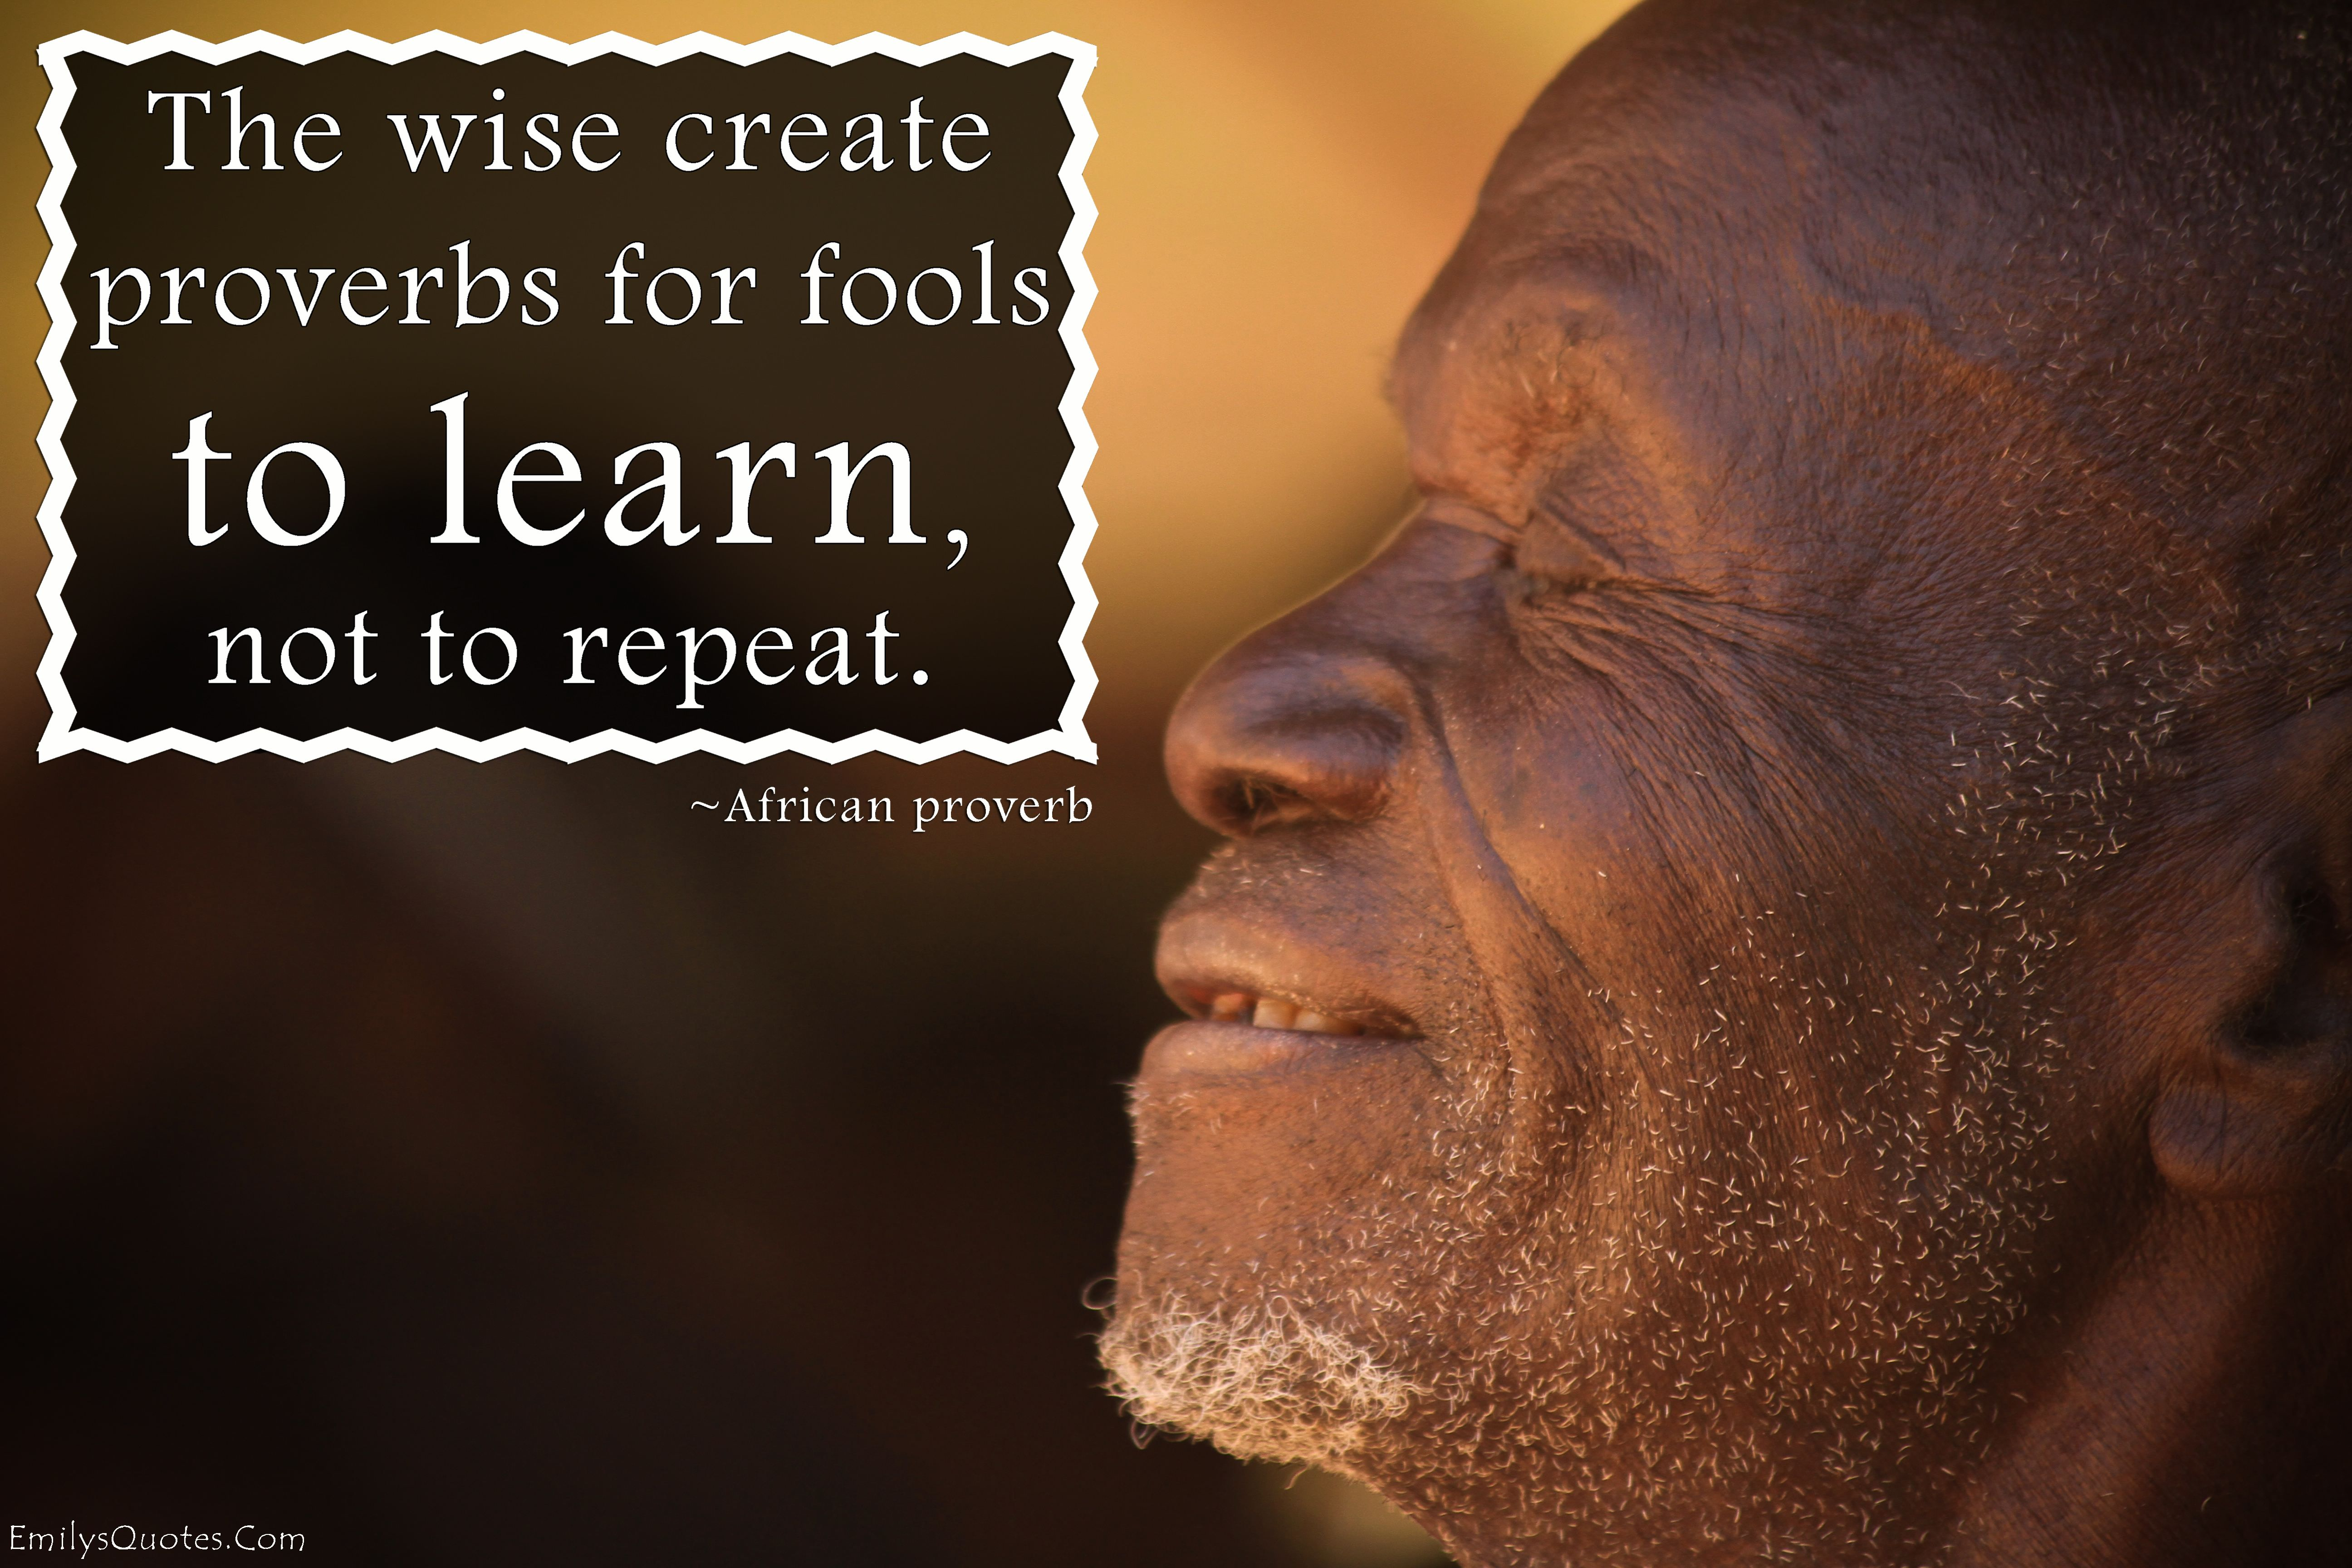 african proverbs wisdom, proverbs, fools, learning